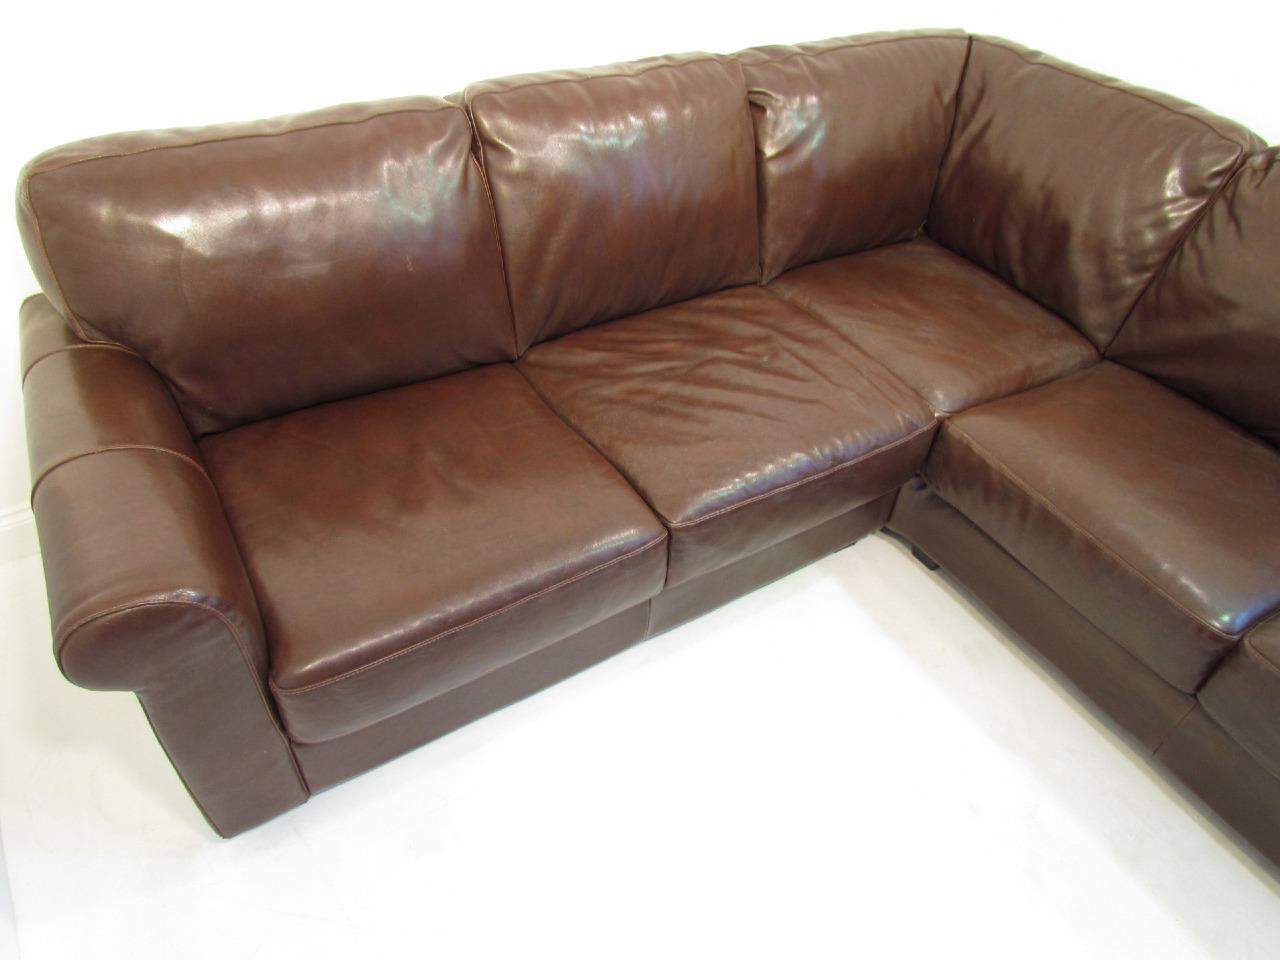 A Large Brown Premium Leather Corner Sofa Very Comfy